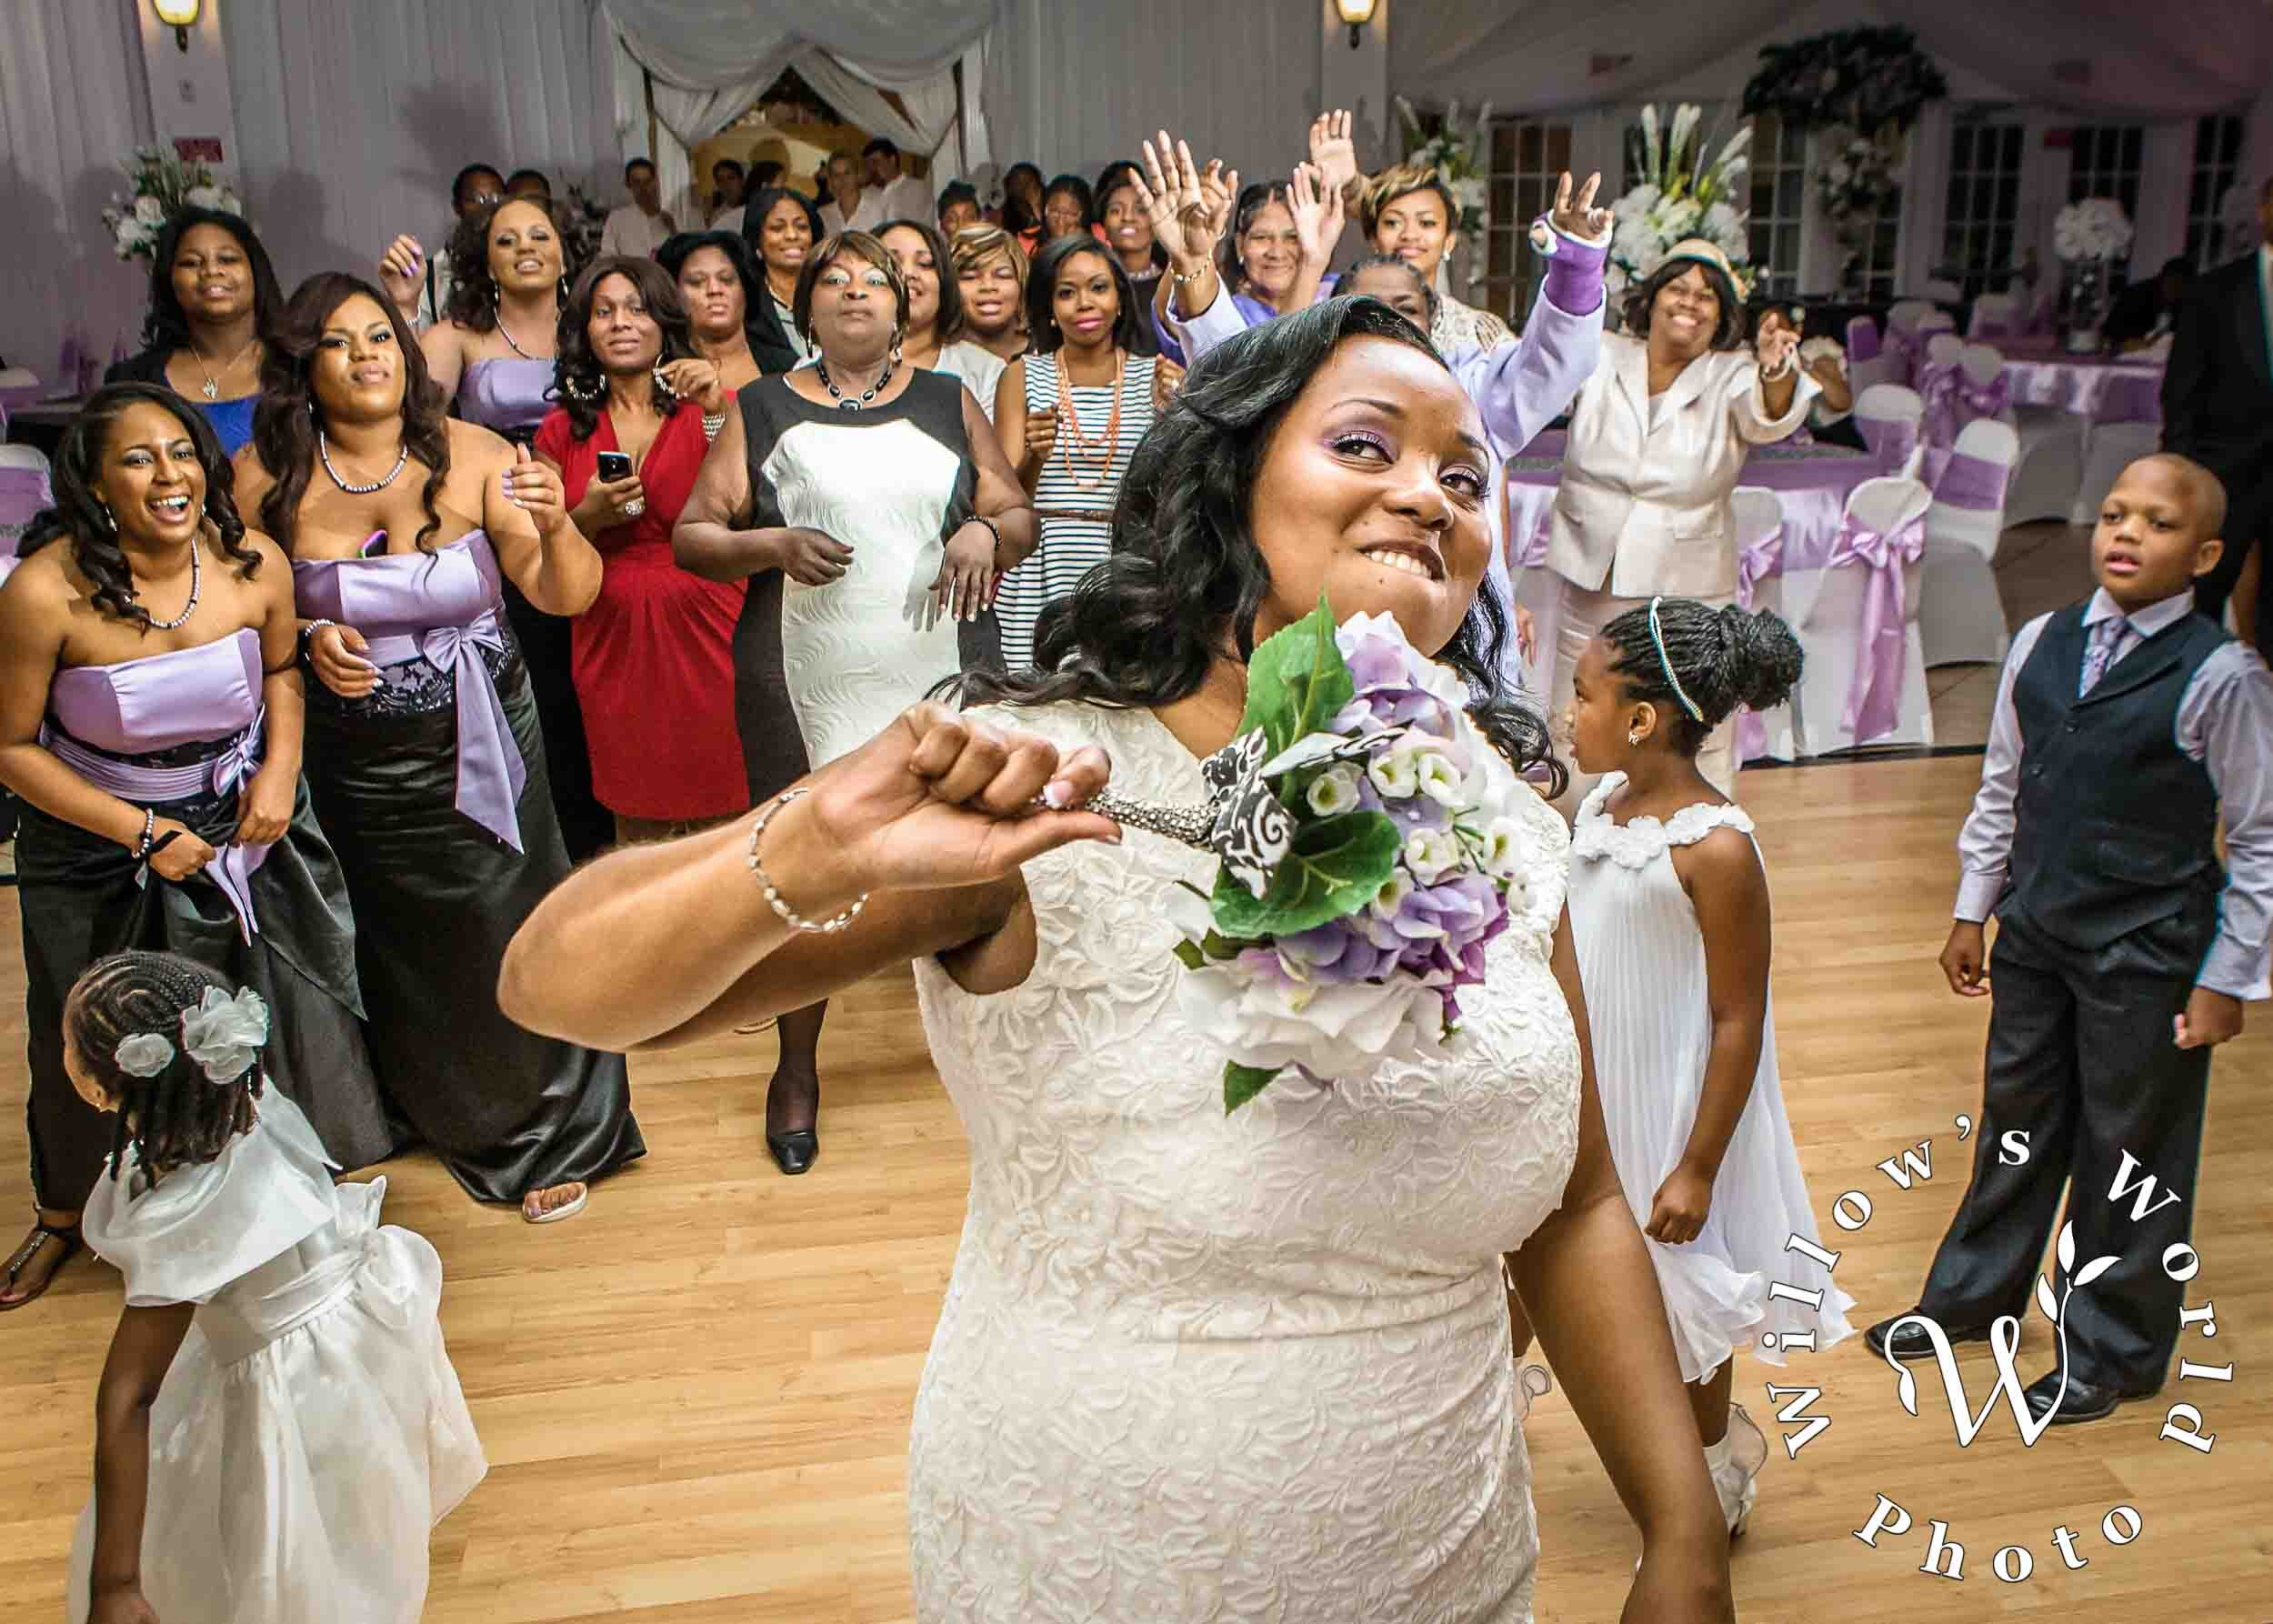 14-Mobile-Alabama-Wedding-Bouquet-Toss-Photo-Willows-World-Photo.jpg